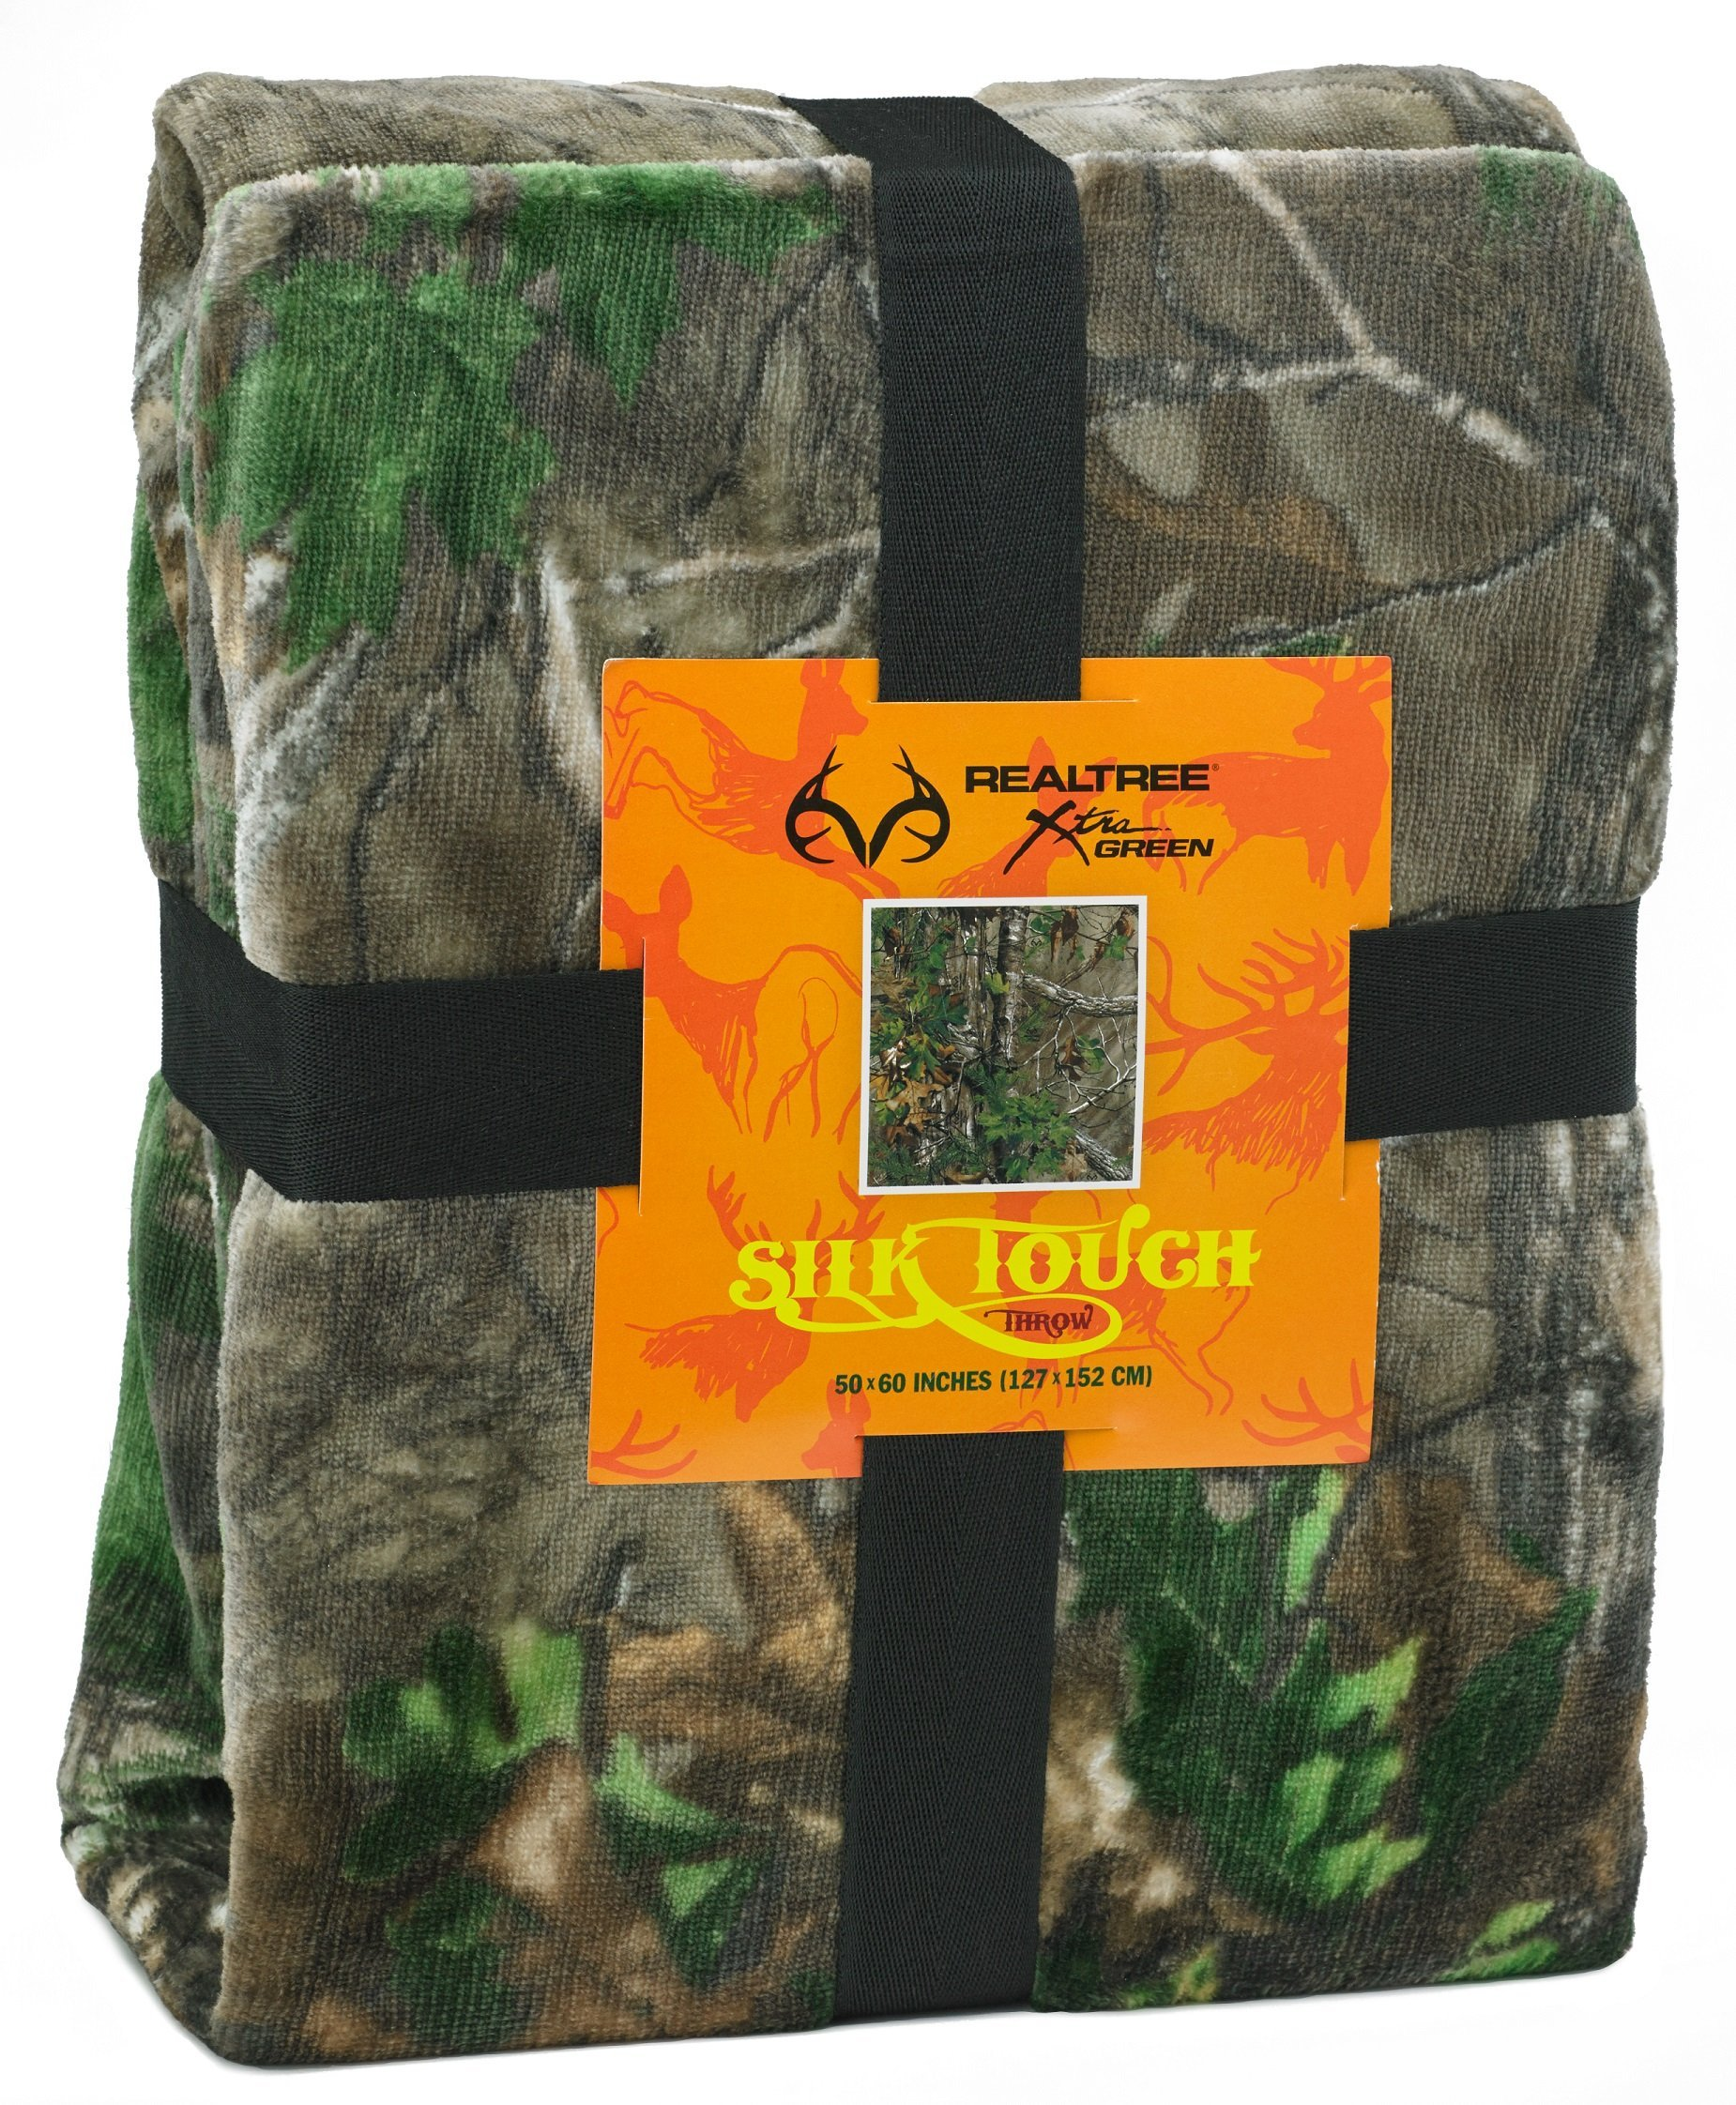 Realtree Silk Touch Throw